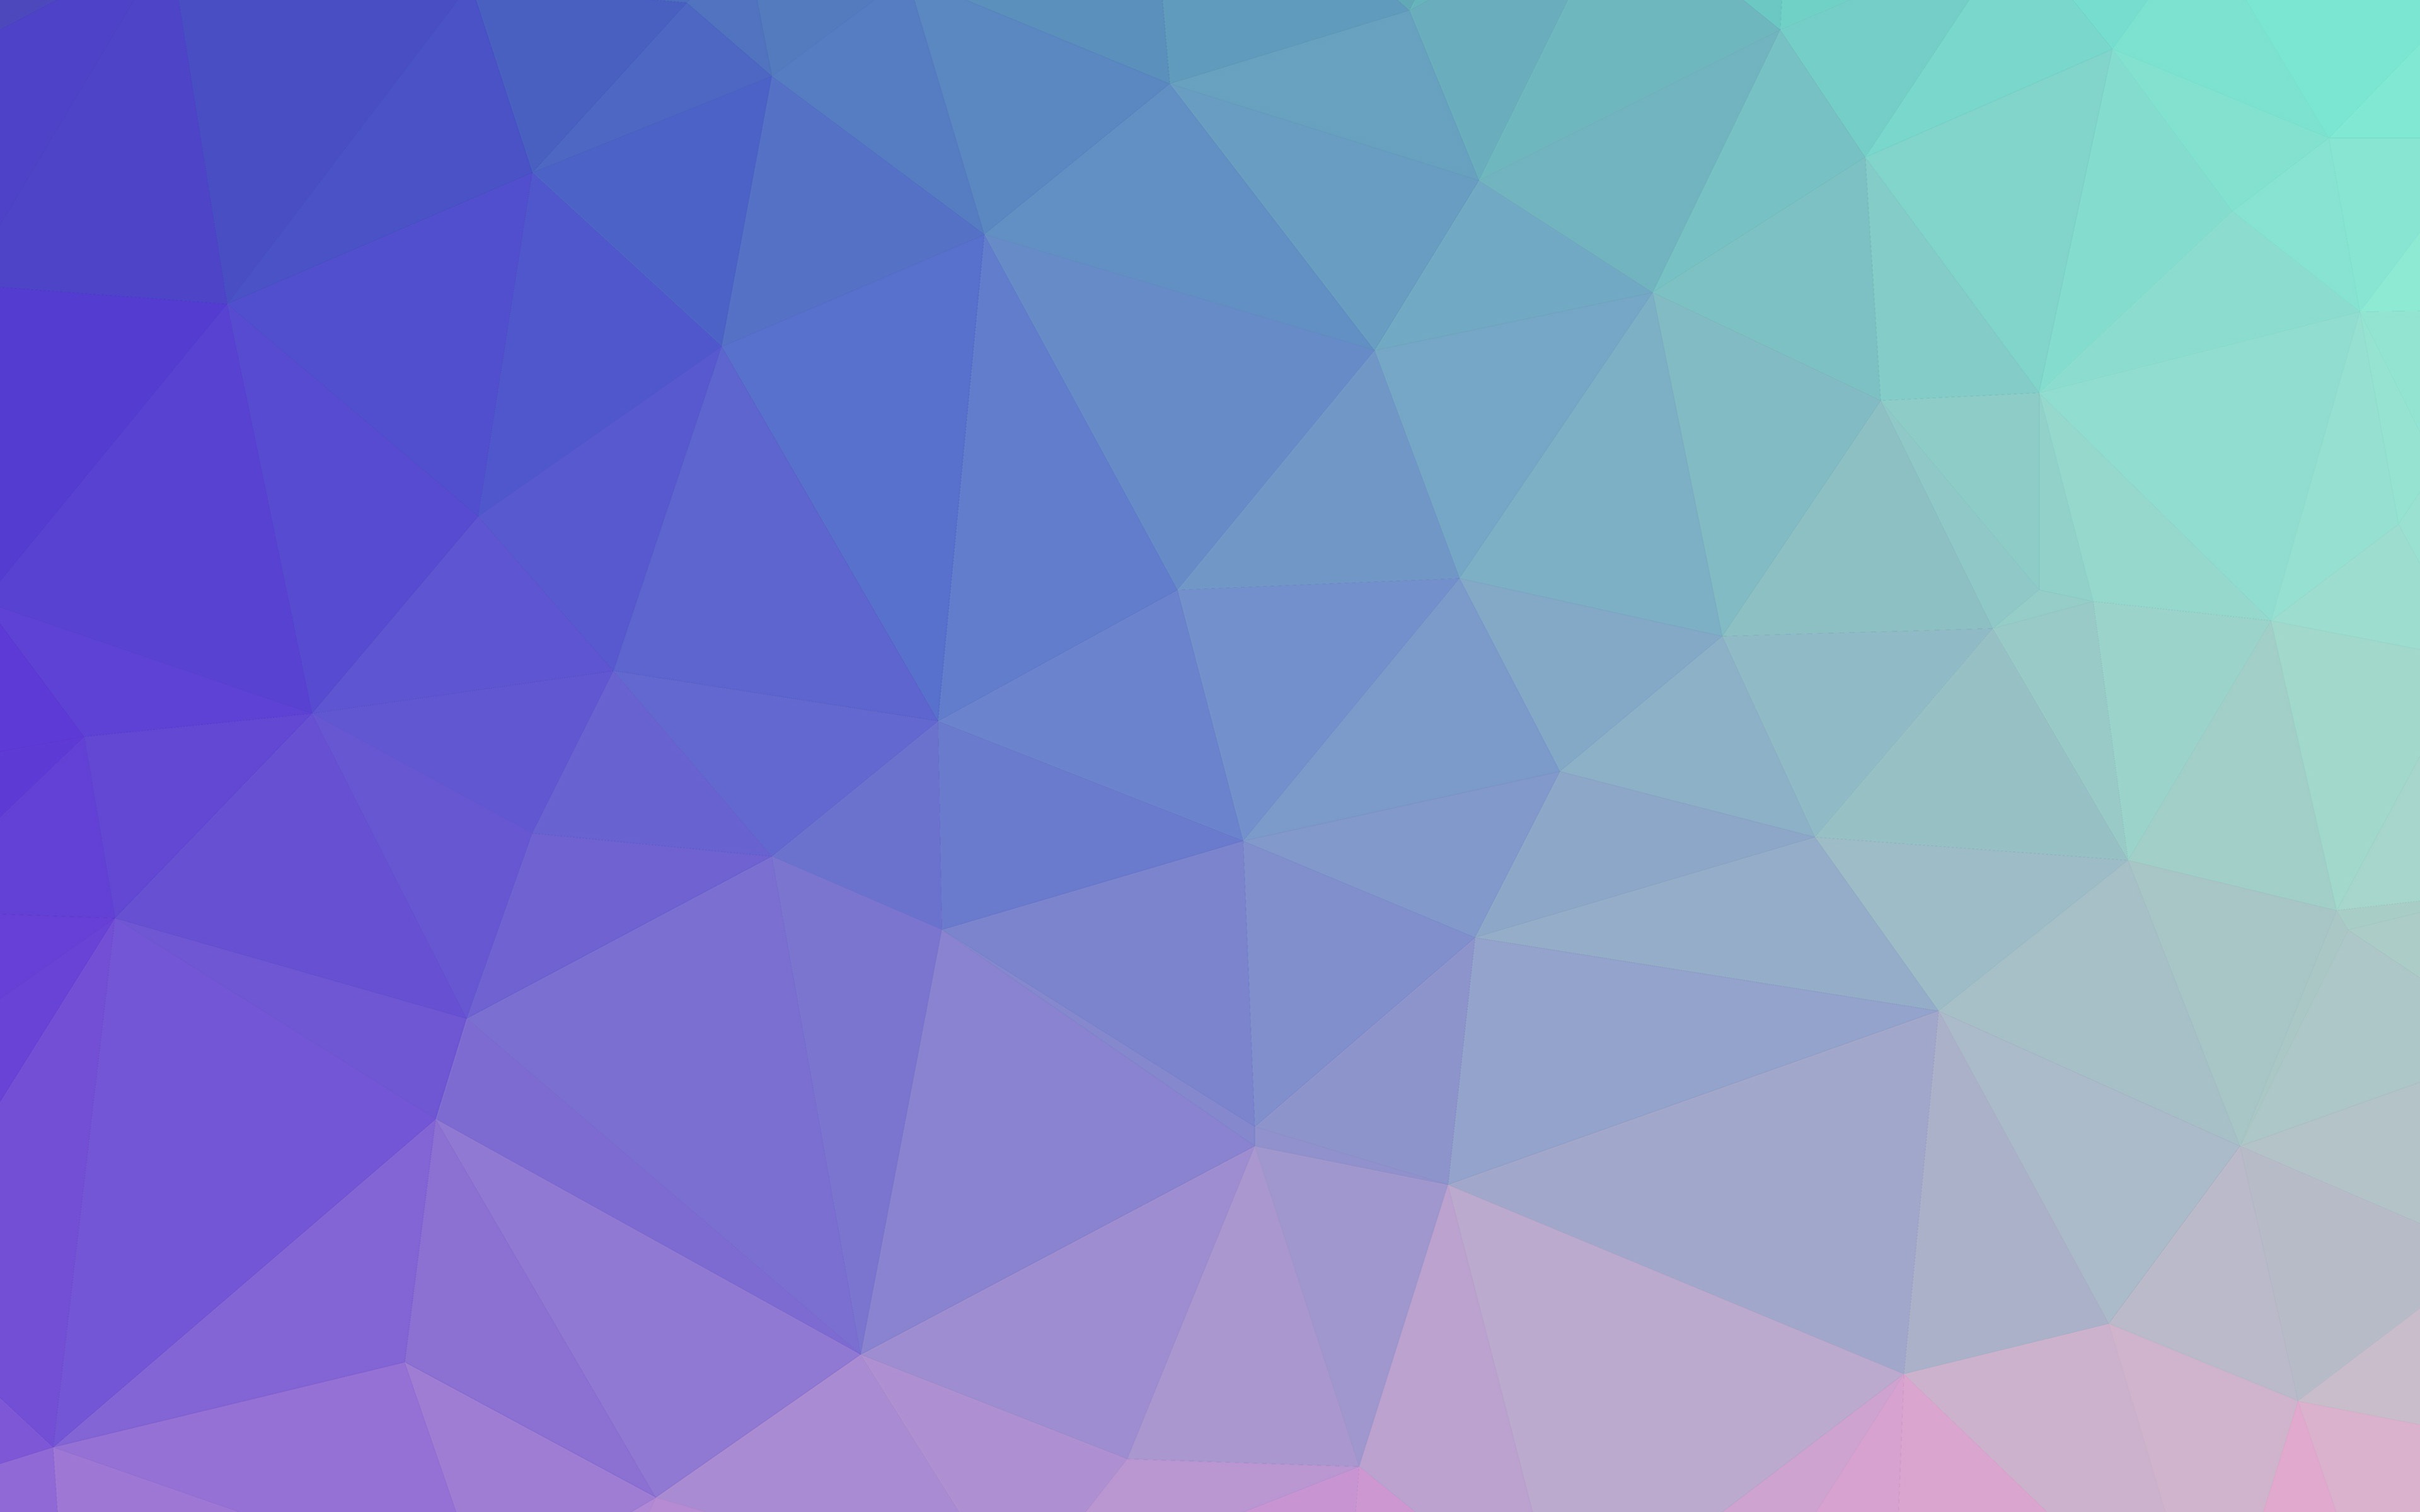 papers.co vk66 samsung galaxy polyart pastel blue violet pattern 36 3840x2400 4k wallpaper